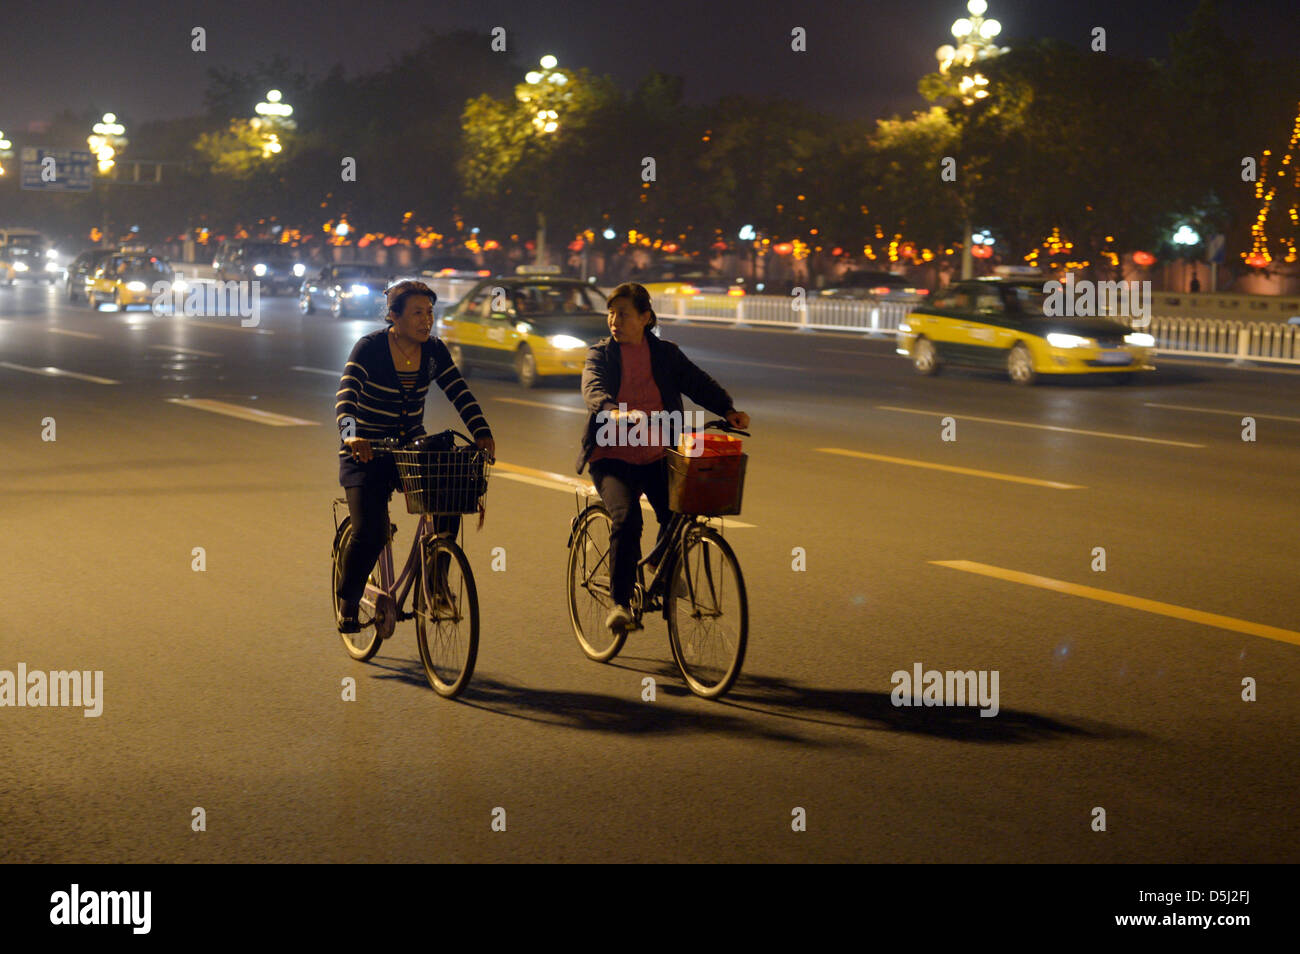 Two female cylcists ride on their bicycle through busy evening traffic in Bejing, China, 11 October 2012. Photo: - Stock Image